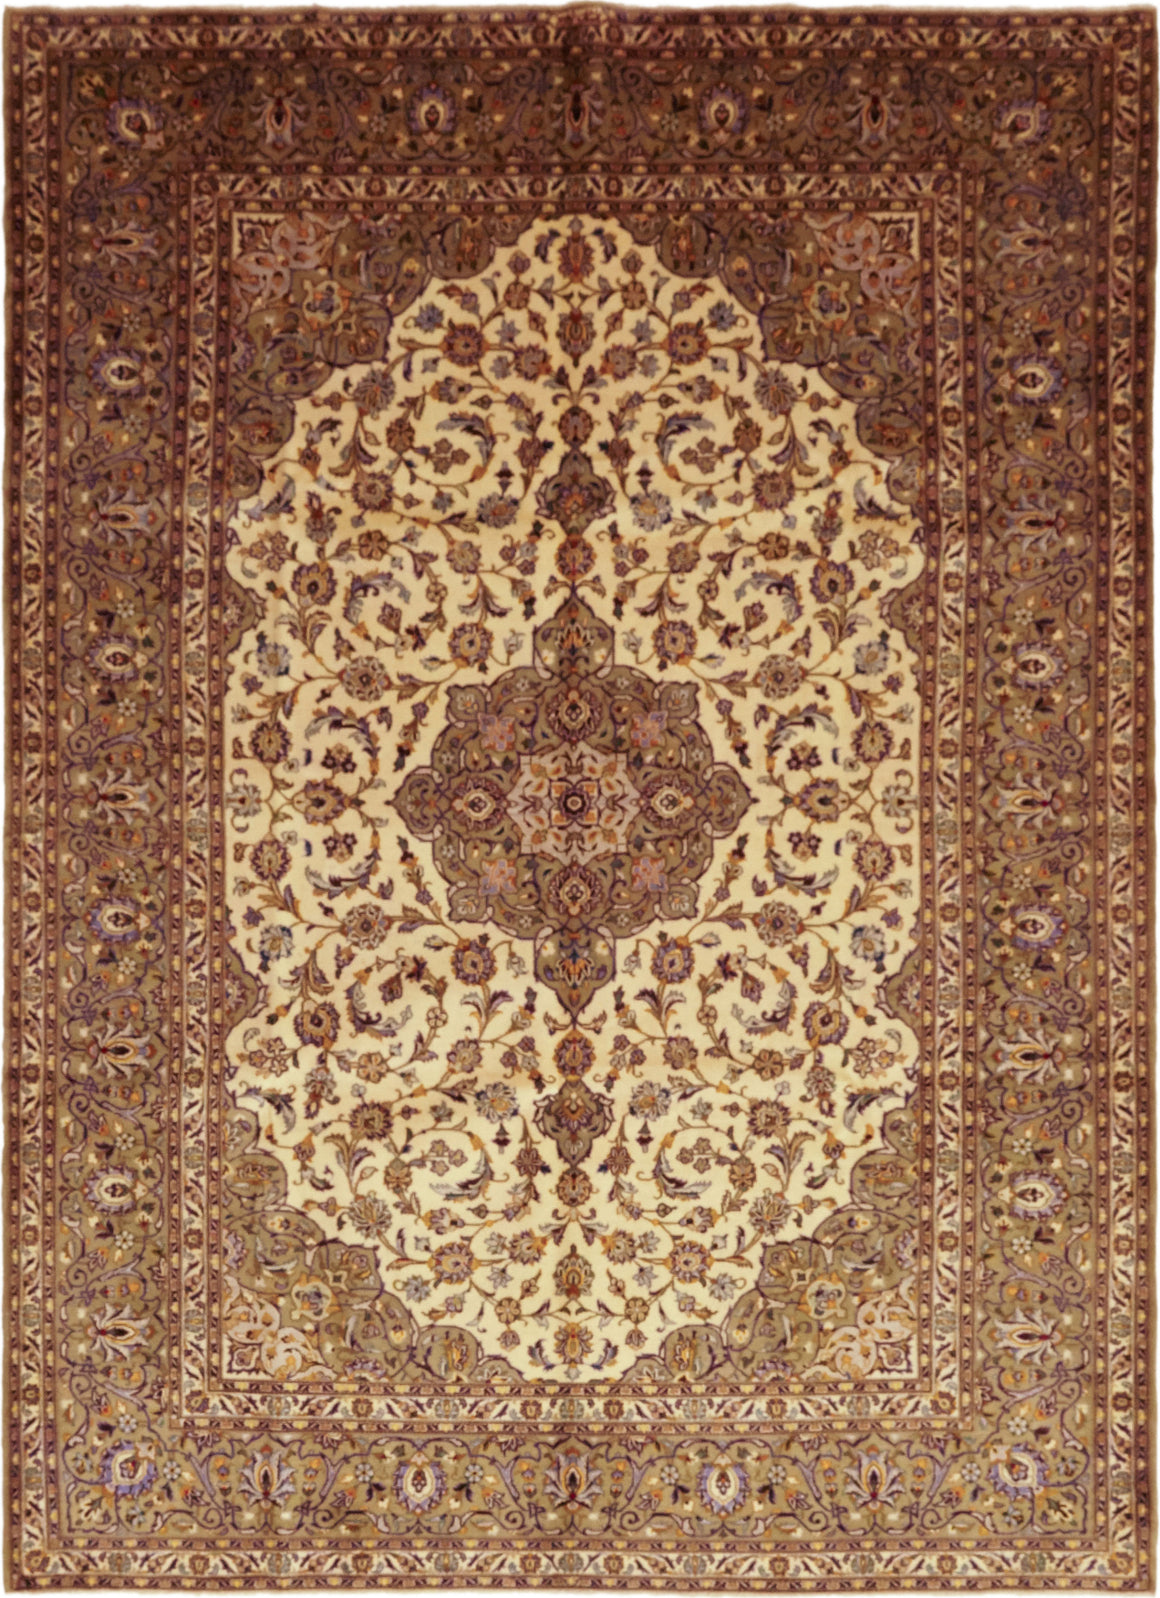 Solo Rugs Kashan M6085-22091 Cream Area Rug main image